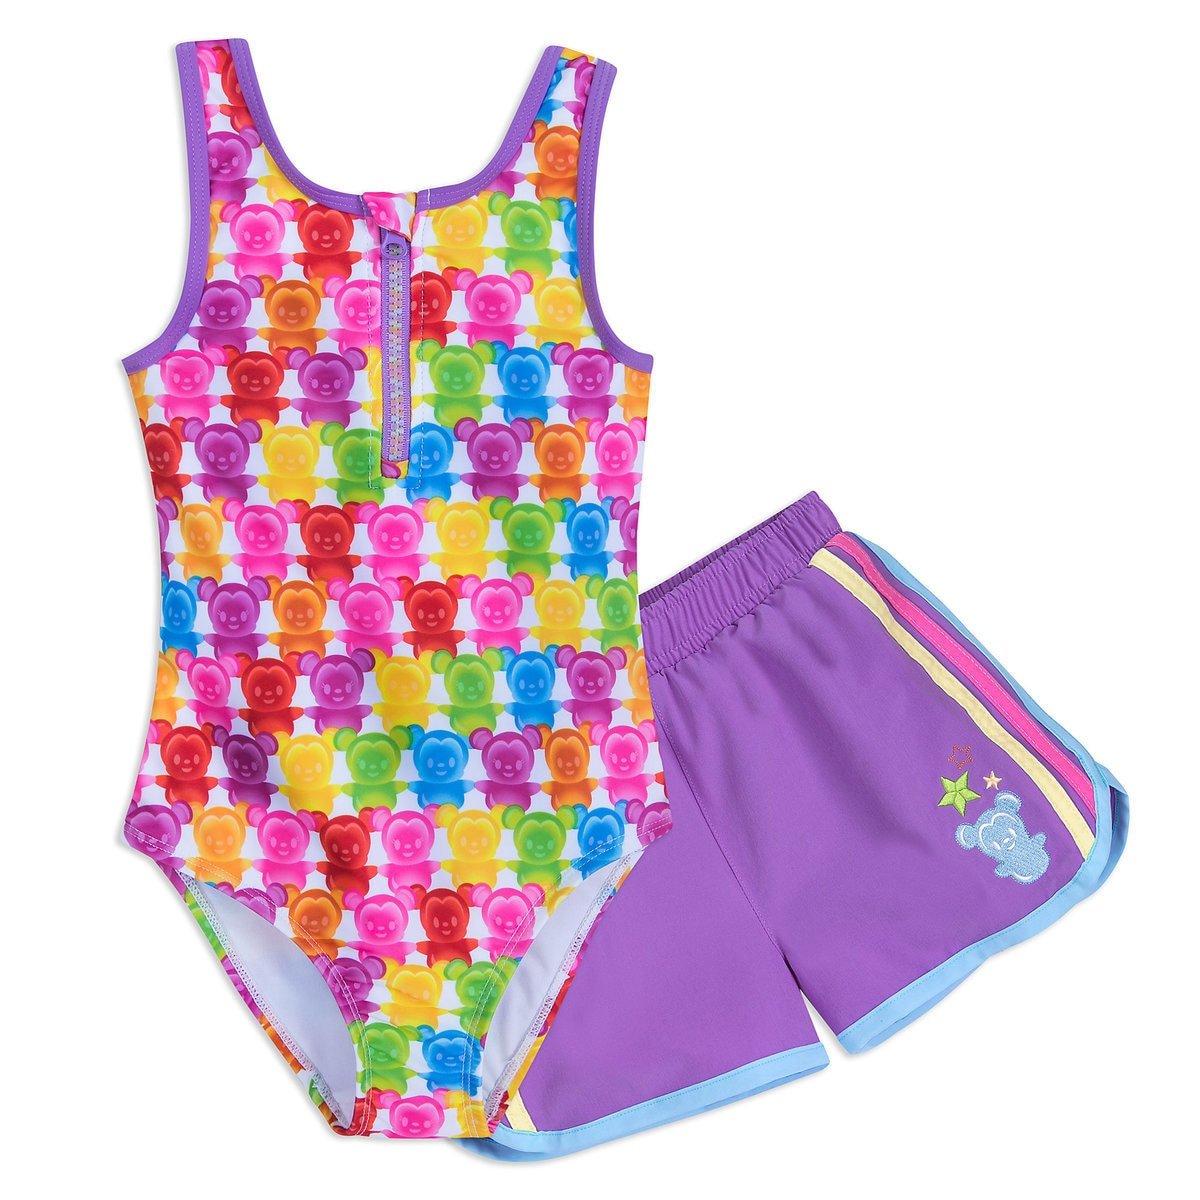 b4f98d2ba6 Product Image of Mickey and Minnie Mouse Swimsuit and Shorts Set for Girls  # 1